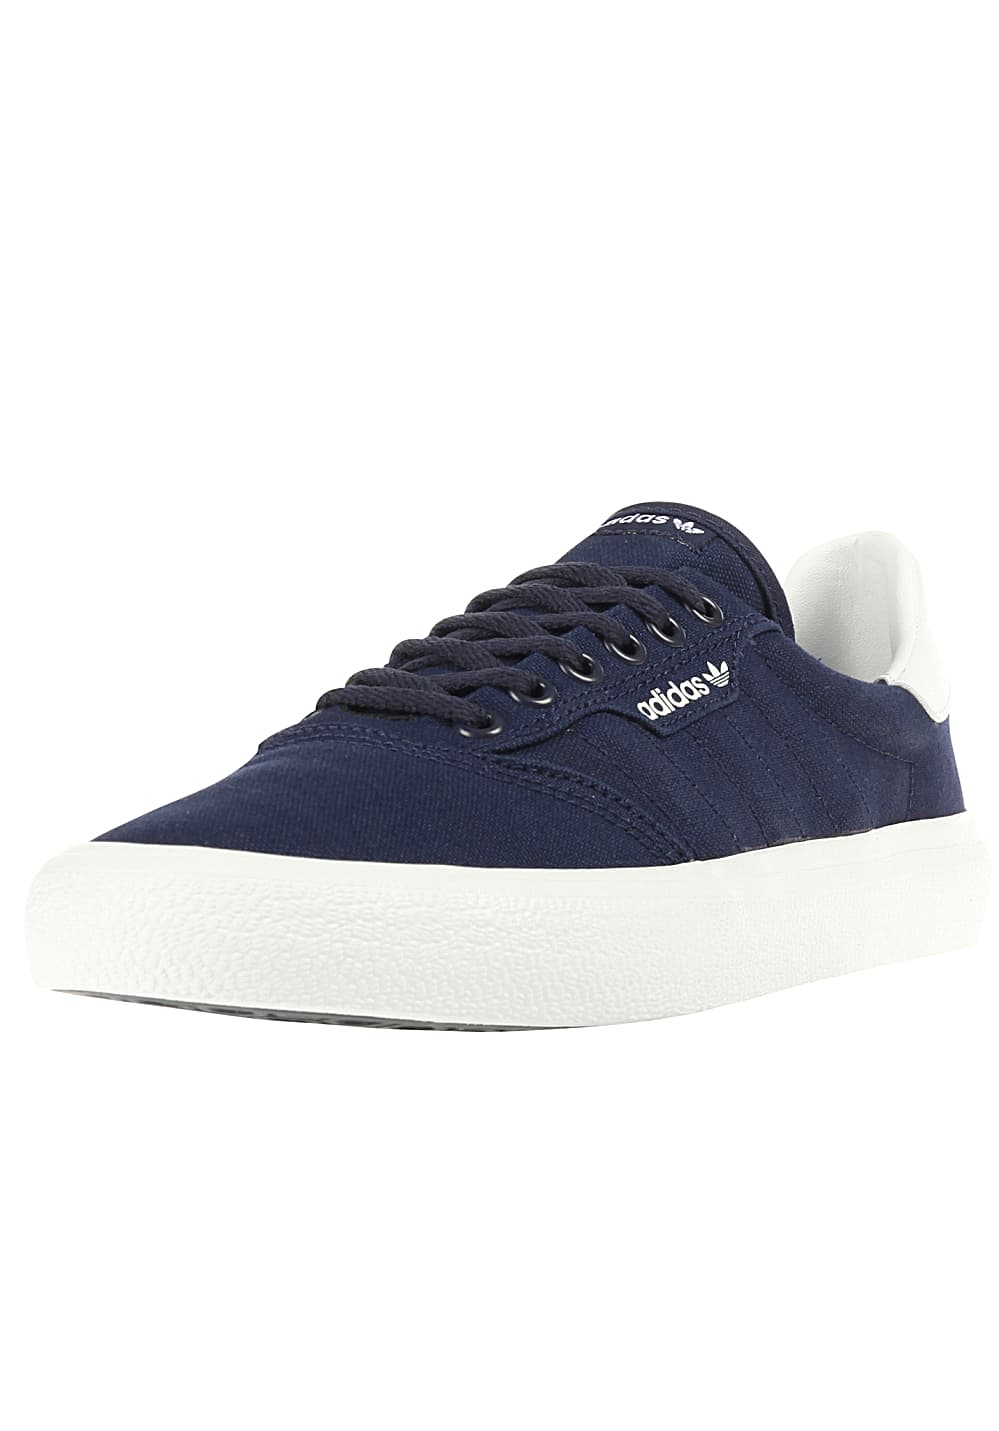 Adidas Skateboarding 3Mc - Sneaker für Herren - Blau - Planet Sports